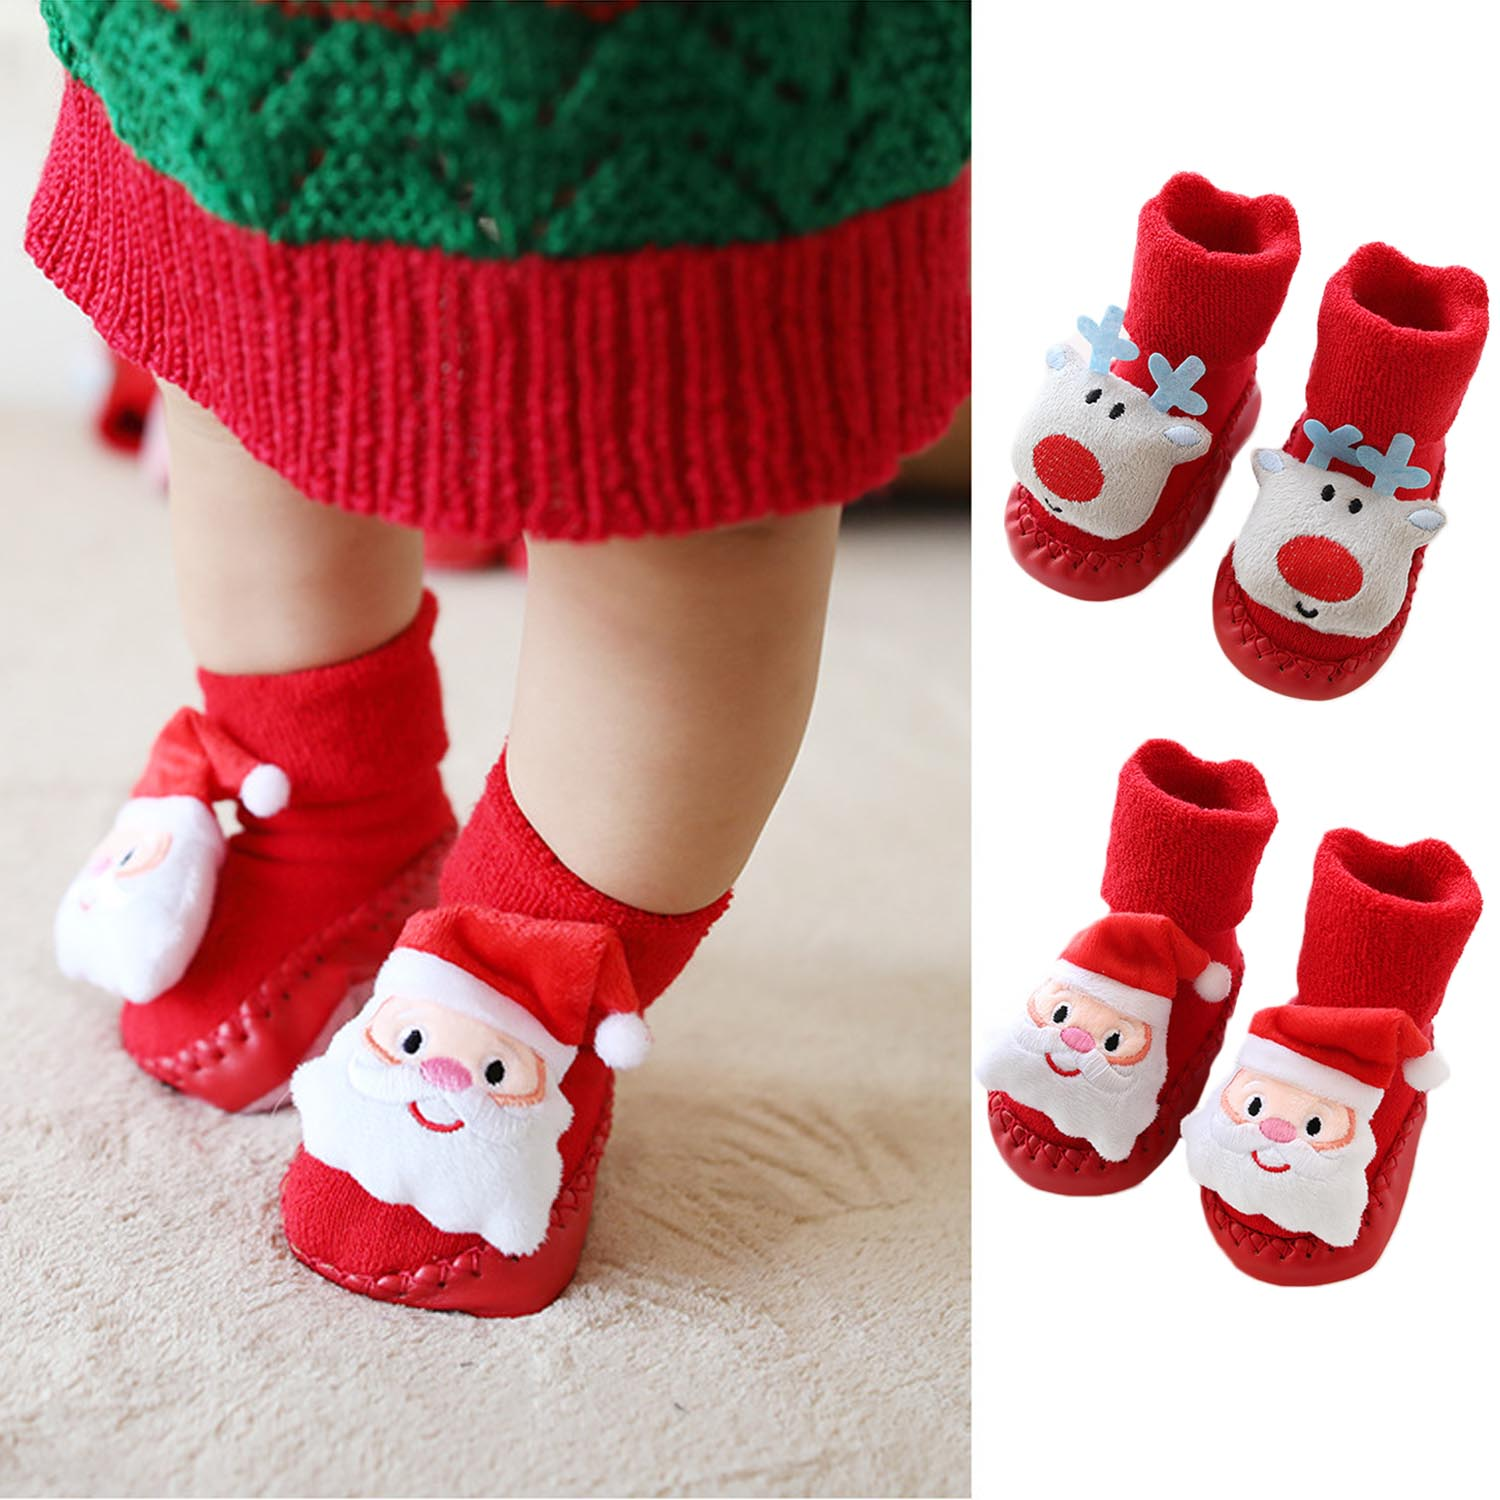 0-24 Months Baby Anti-slip Floor Socks Warm Soft Sole Sock Cartoon Christmas Reindeer Toddler Non Slip Floor Socks Shoes Boots